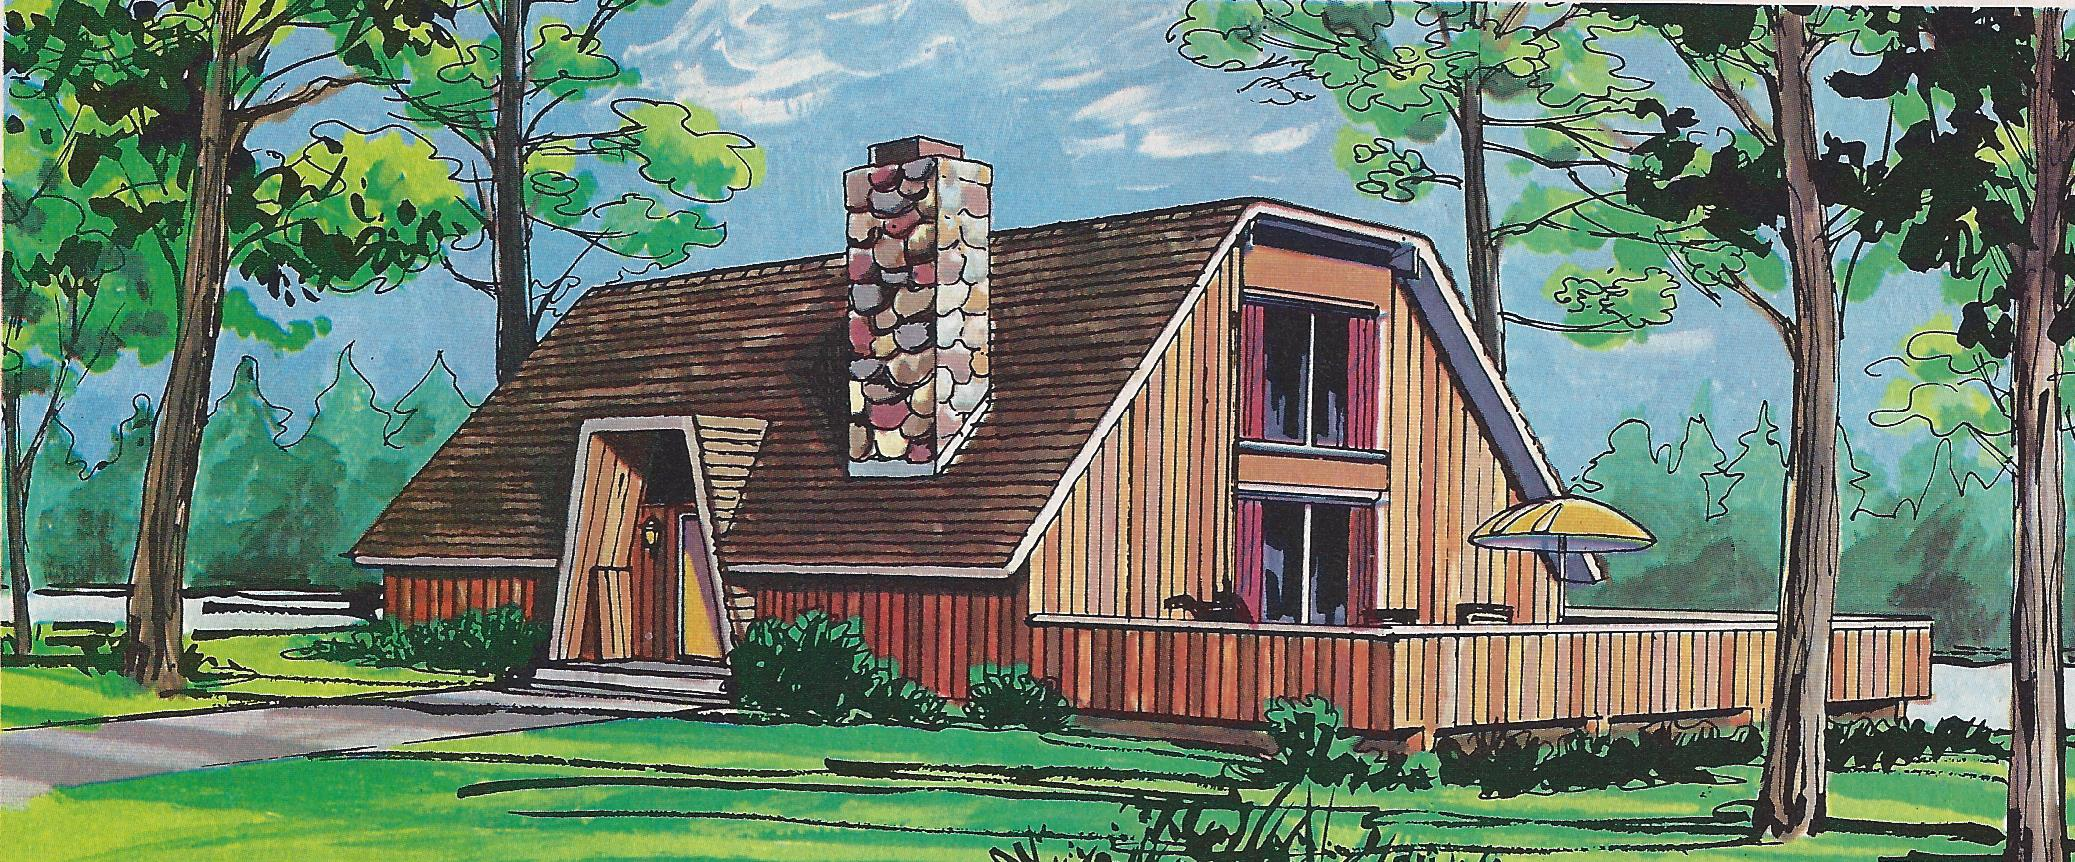 5 pre fab modern home plan designs from 1977 Better Homes